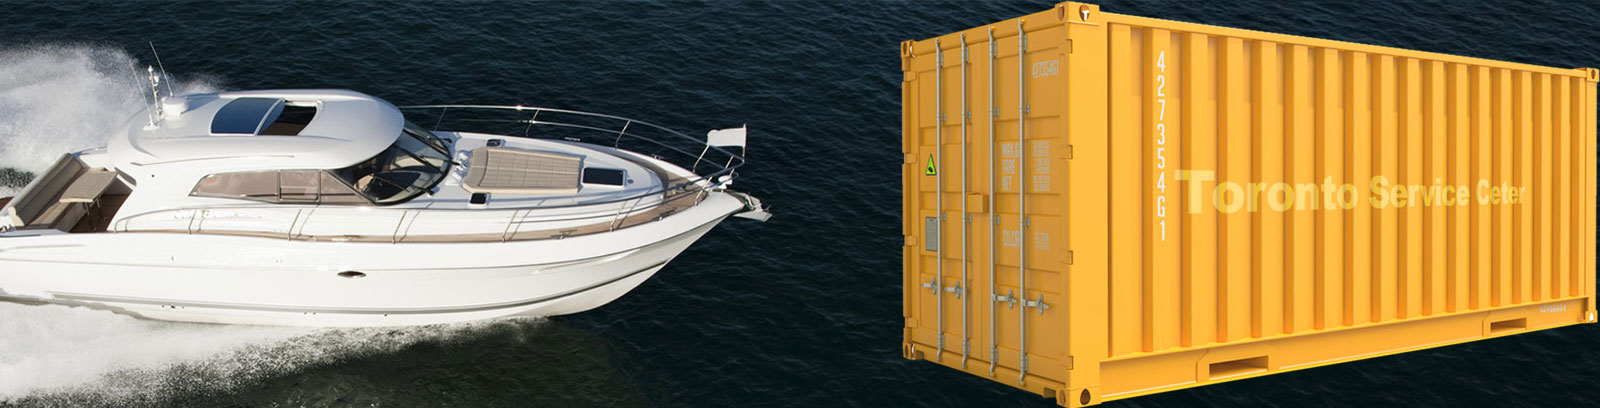 boat-storage-containers